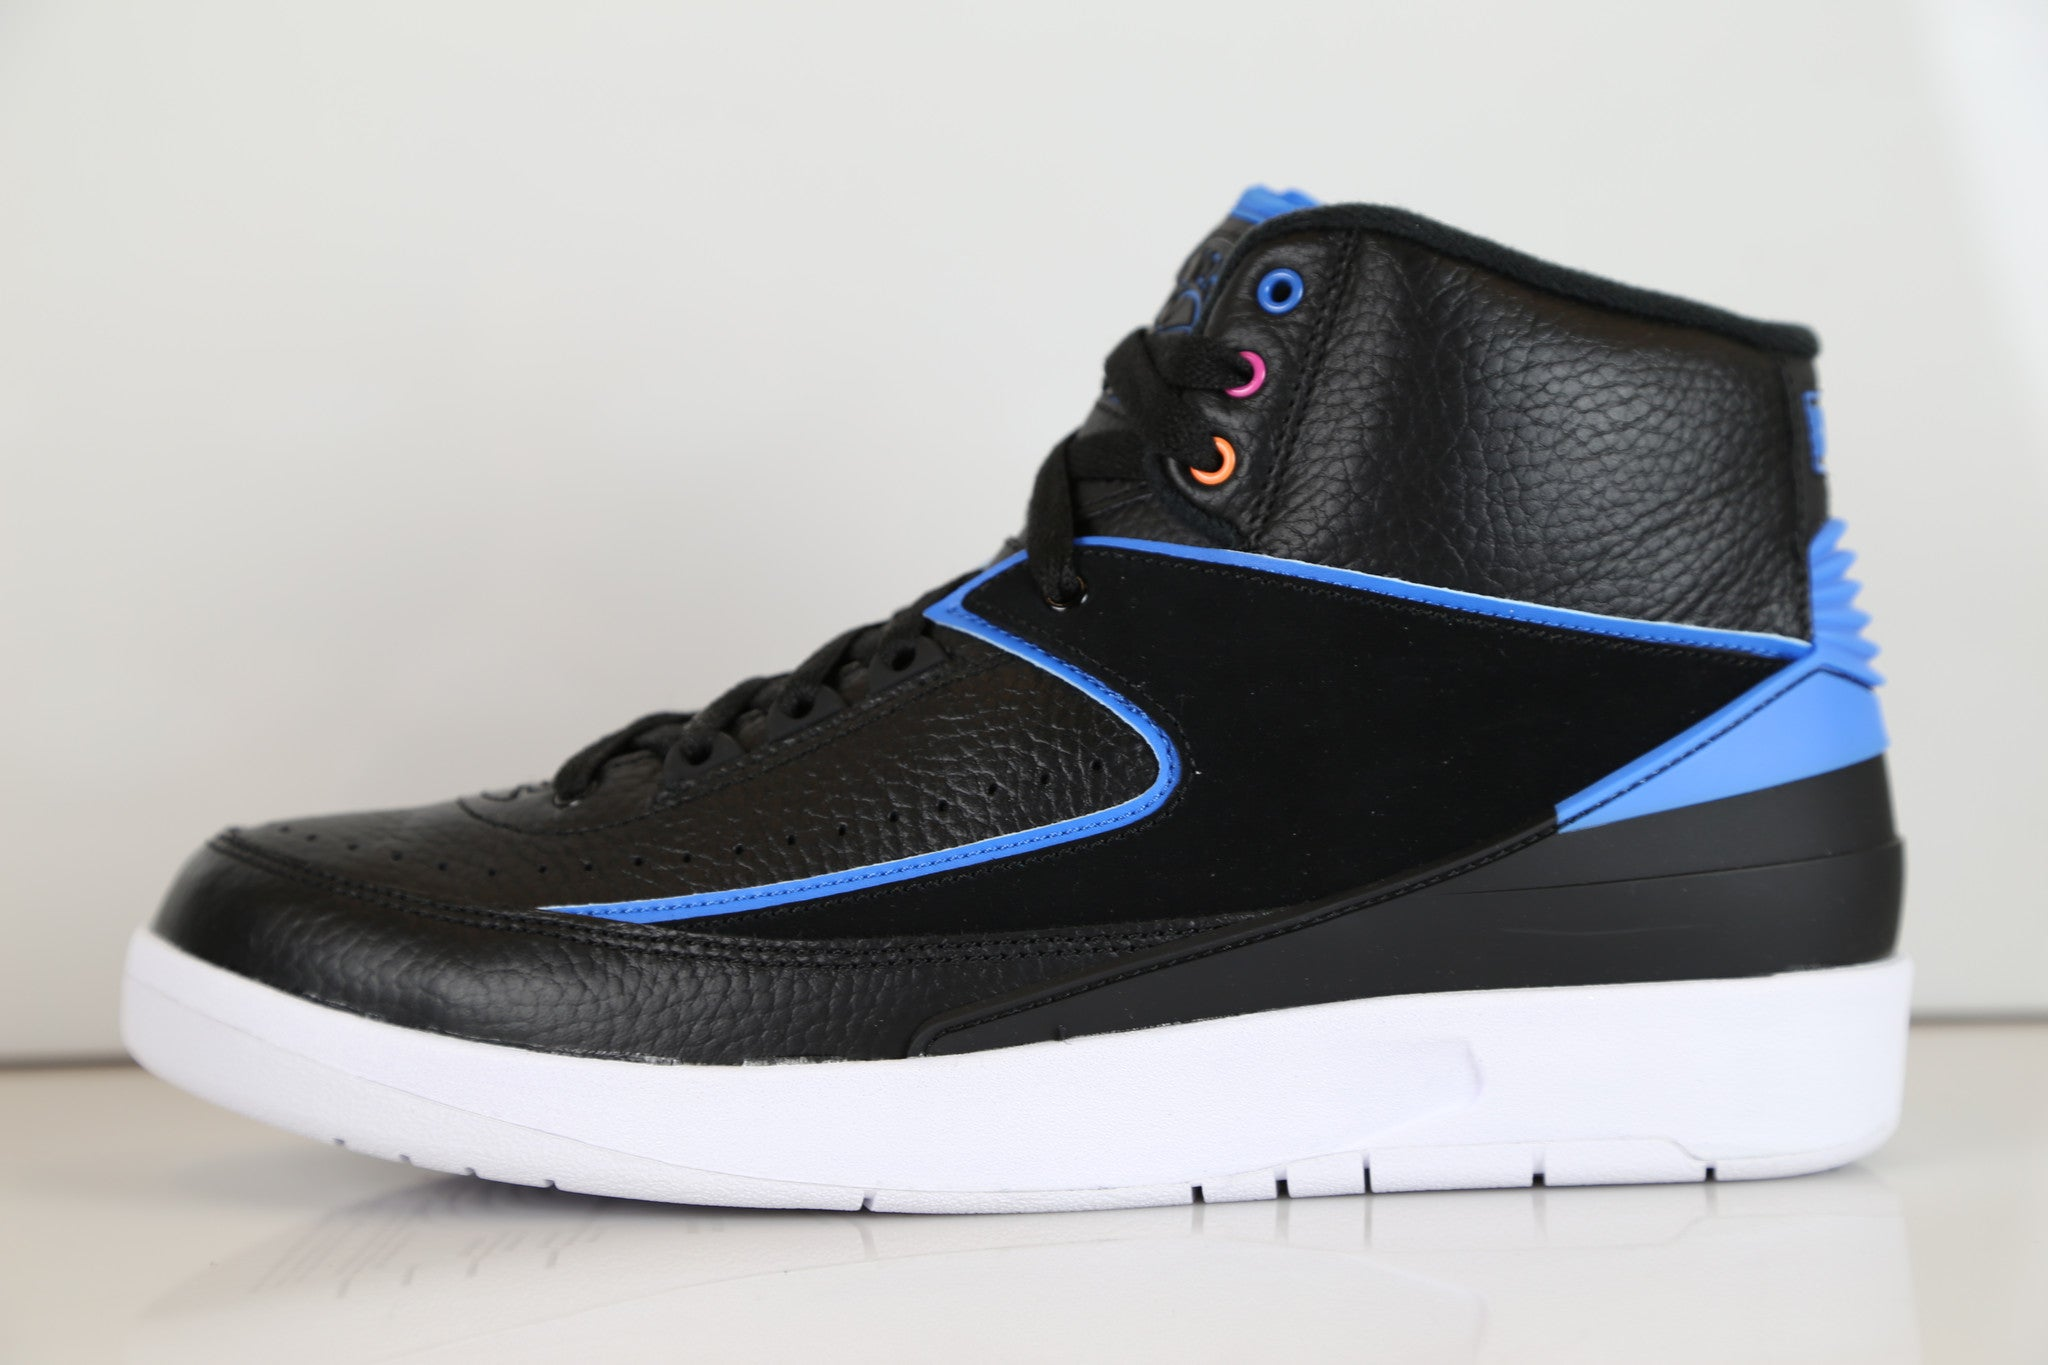 e97e68facc82 Nike Air Jordan Retro 2 Radio Raheem Black Pink Blue 834274-014 Adult